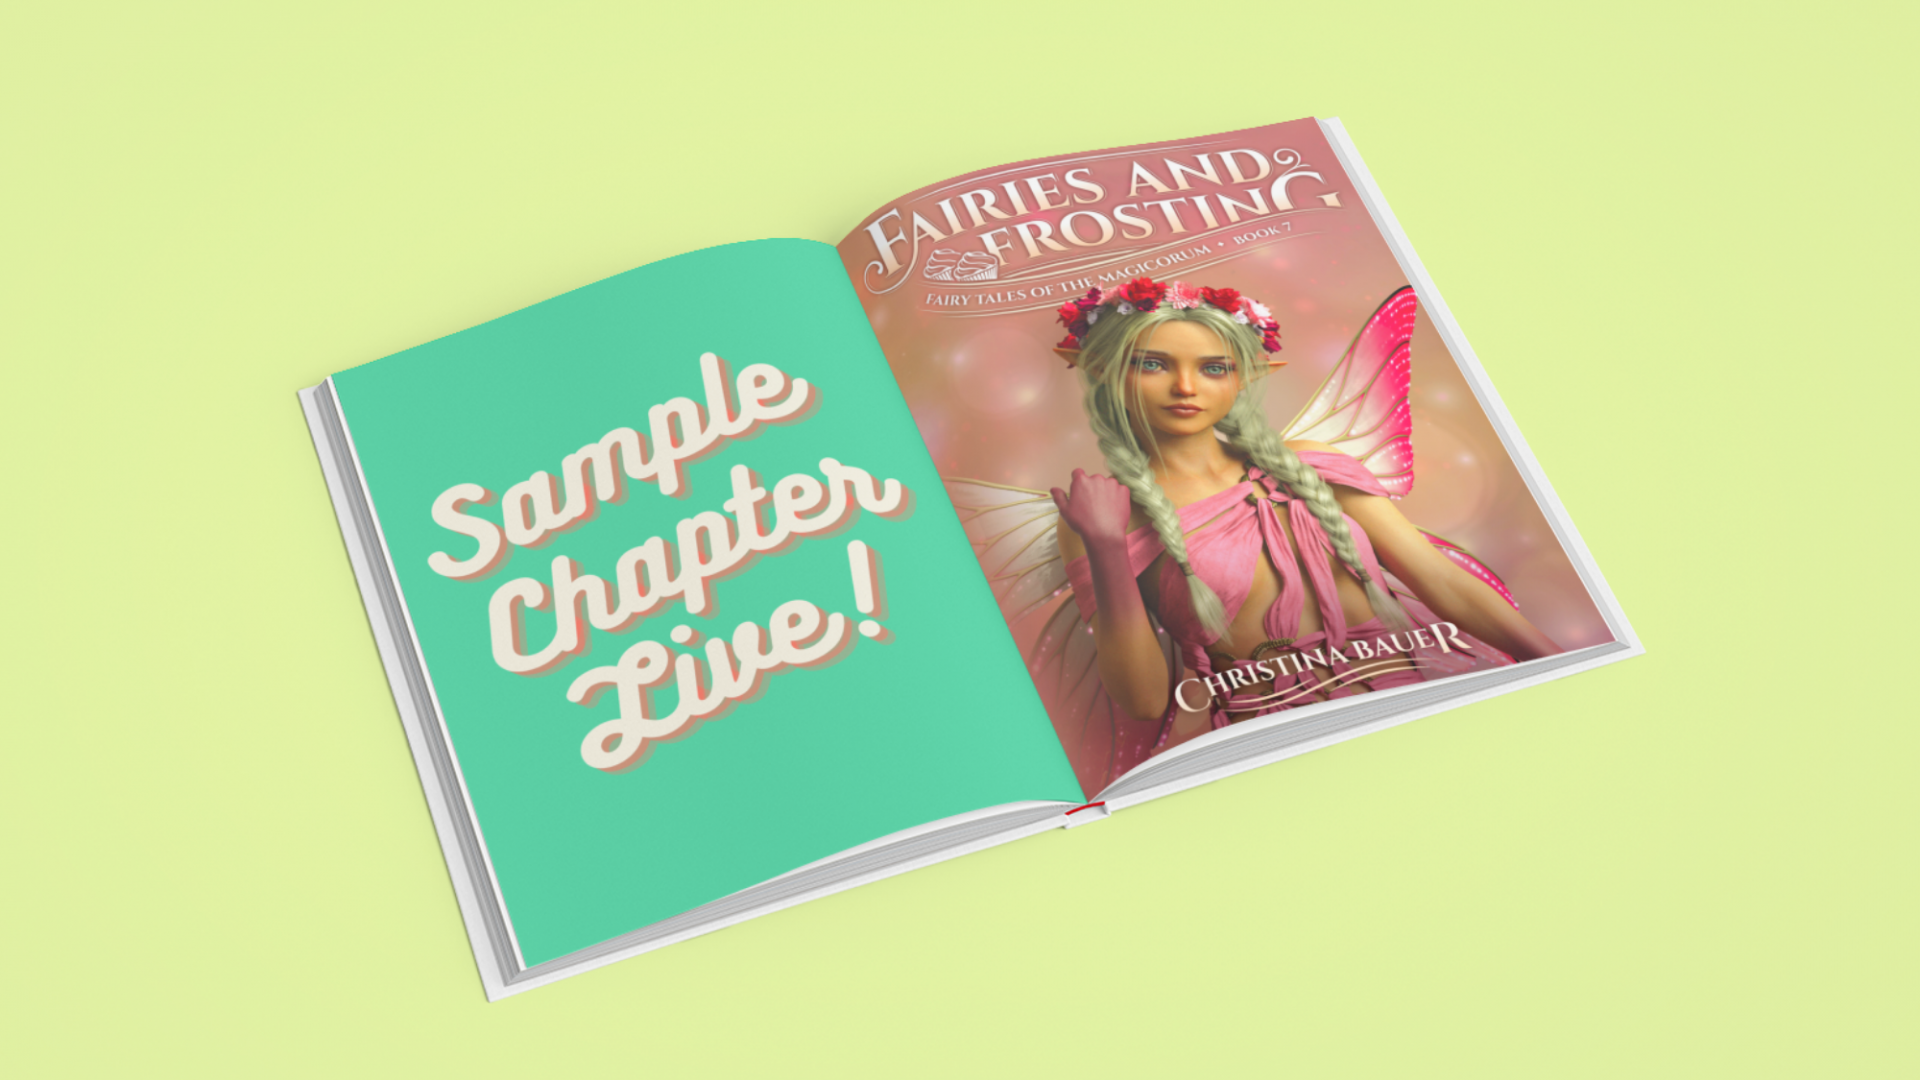 Check Out Ch 1 of FAIRIES AND FROSTING!